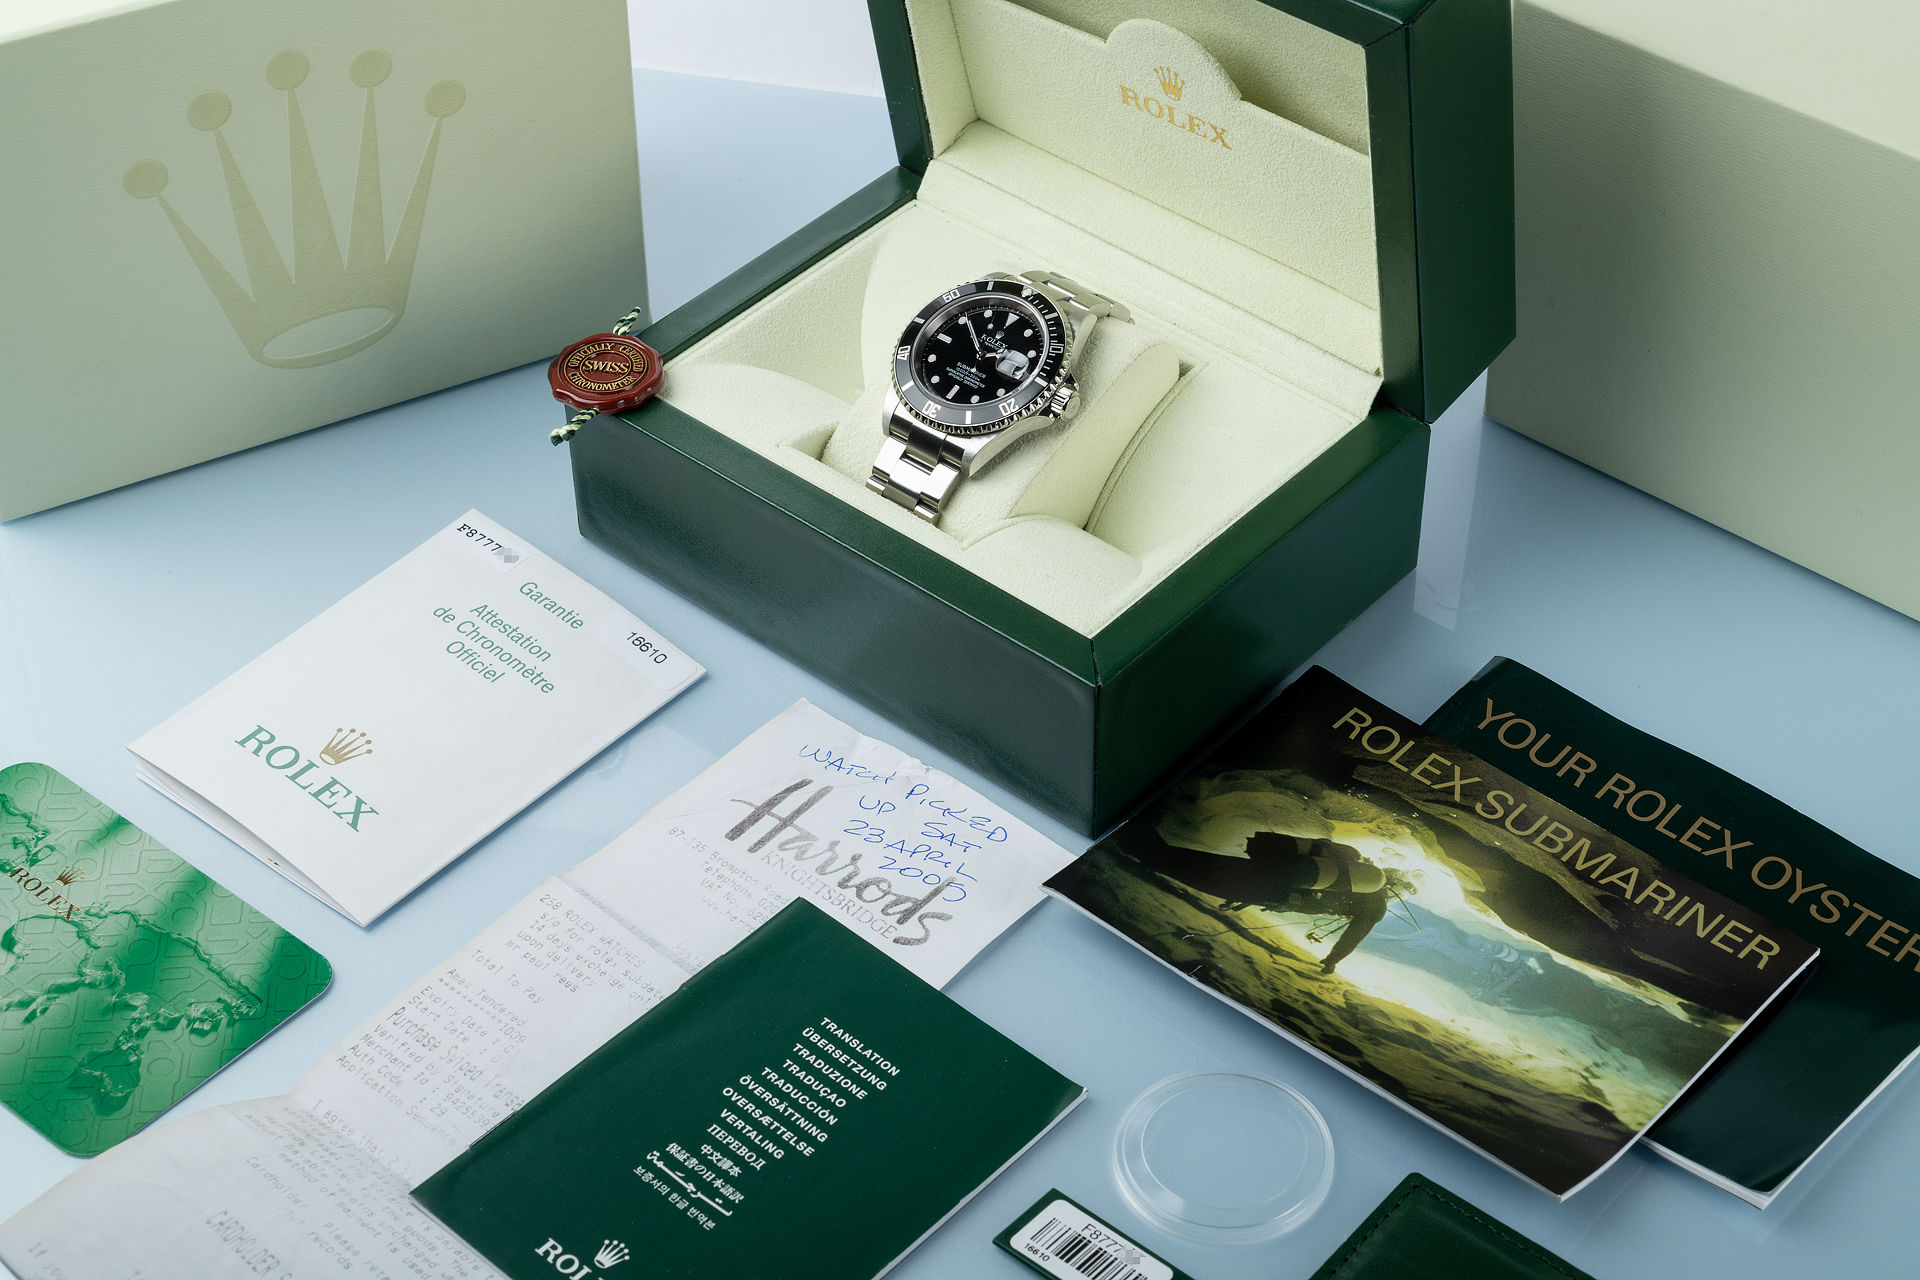 ref 16610 | 'Harrods Box & Papers' | Rolex Submariner Date